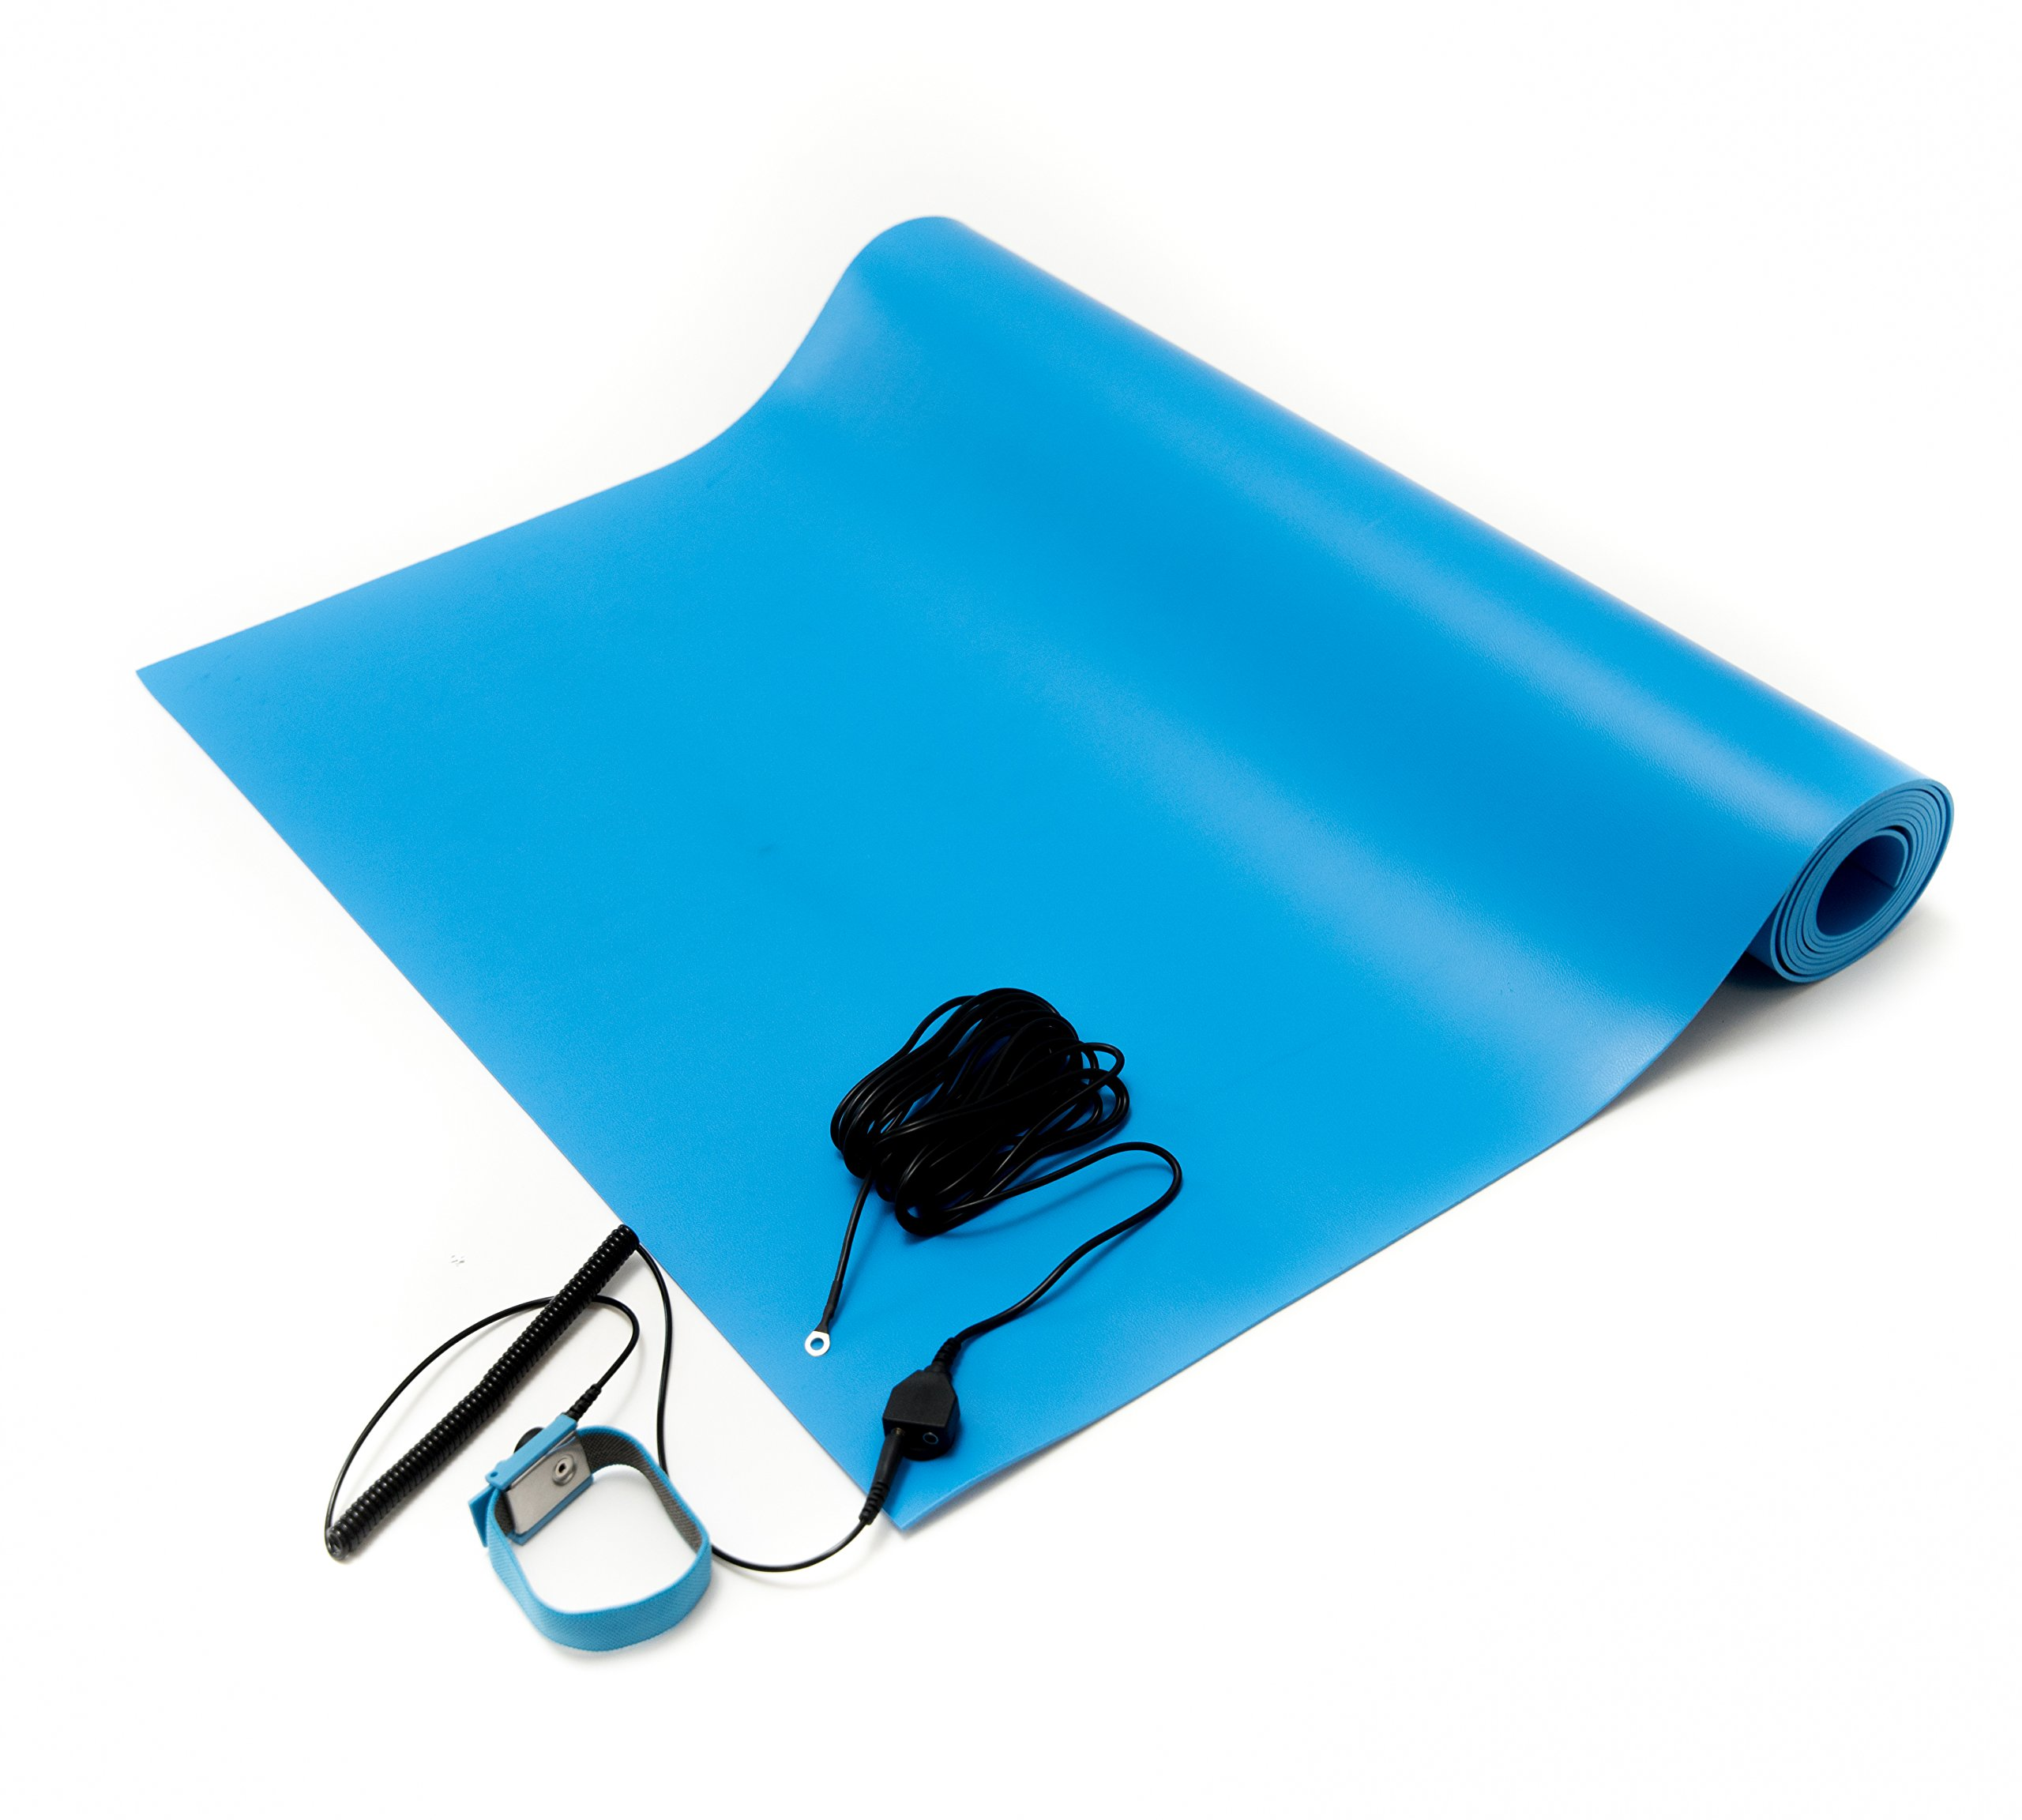 Bertech ESD Mat Kit with a Wrist Strap and a Grounding Cord, 18'' Wide x 30'' Long x 0.093'' Thick, Blue